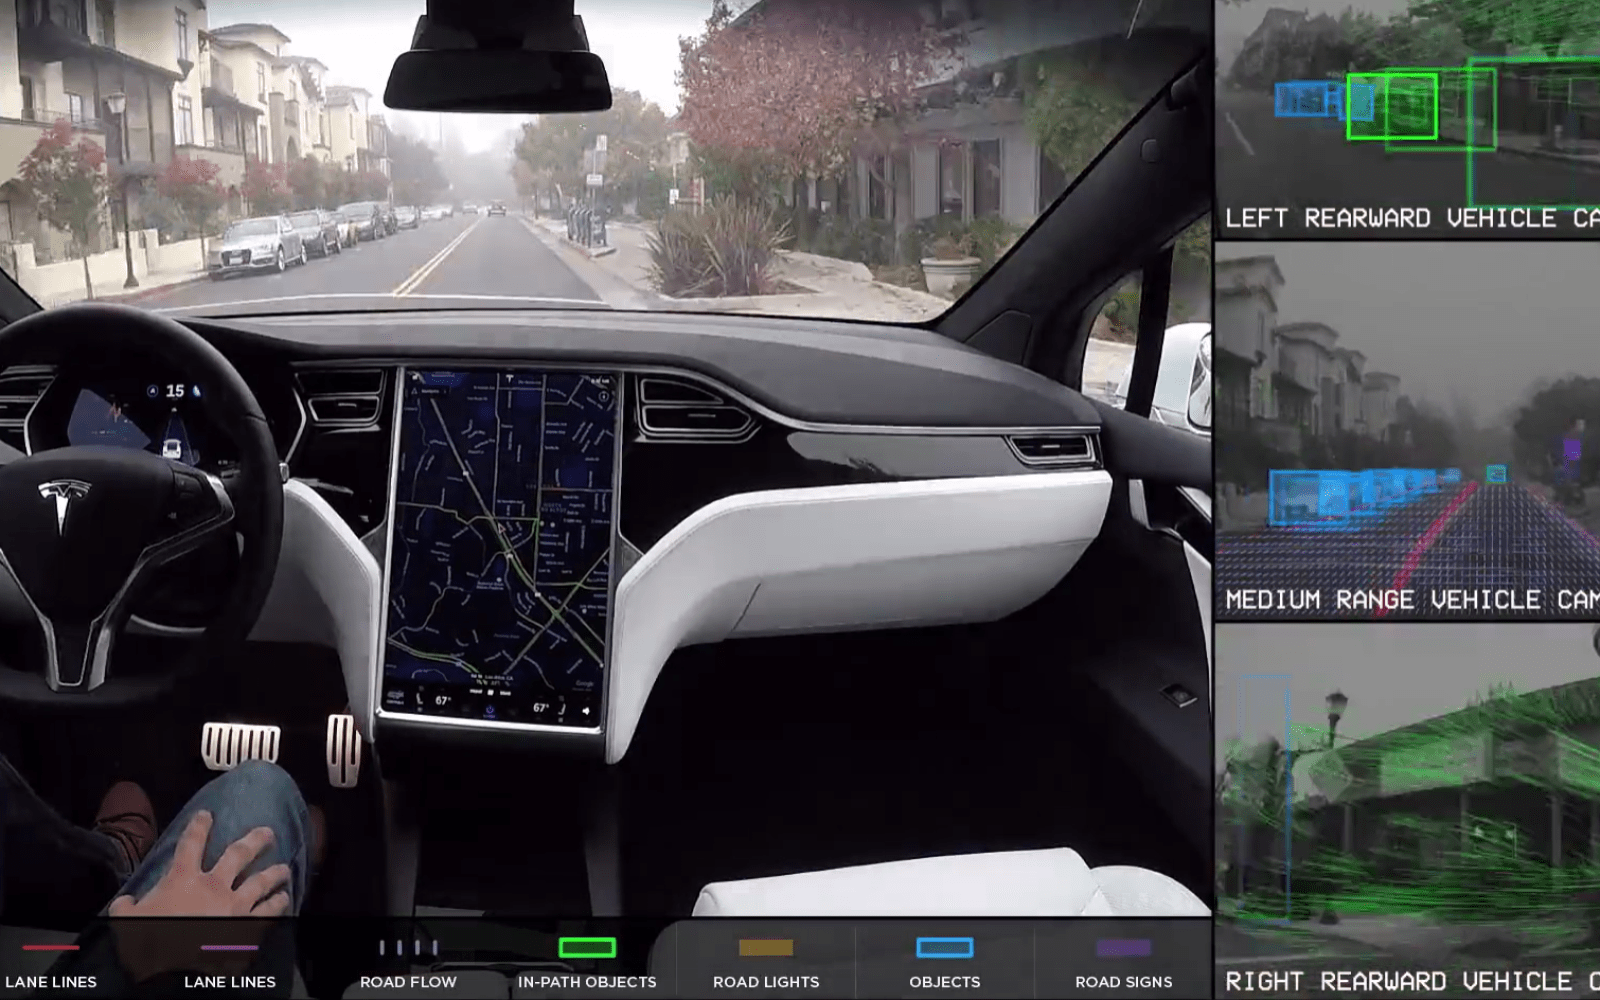 Tesla CEO Elon Musk says 'almost all new cars will be self-driving within 10 years'